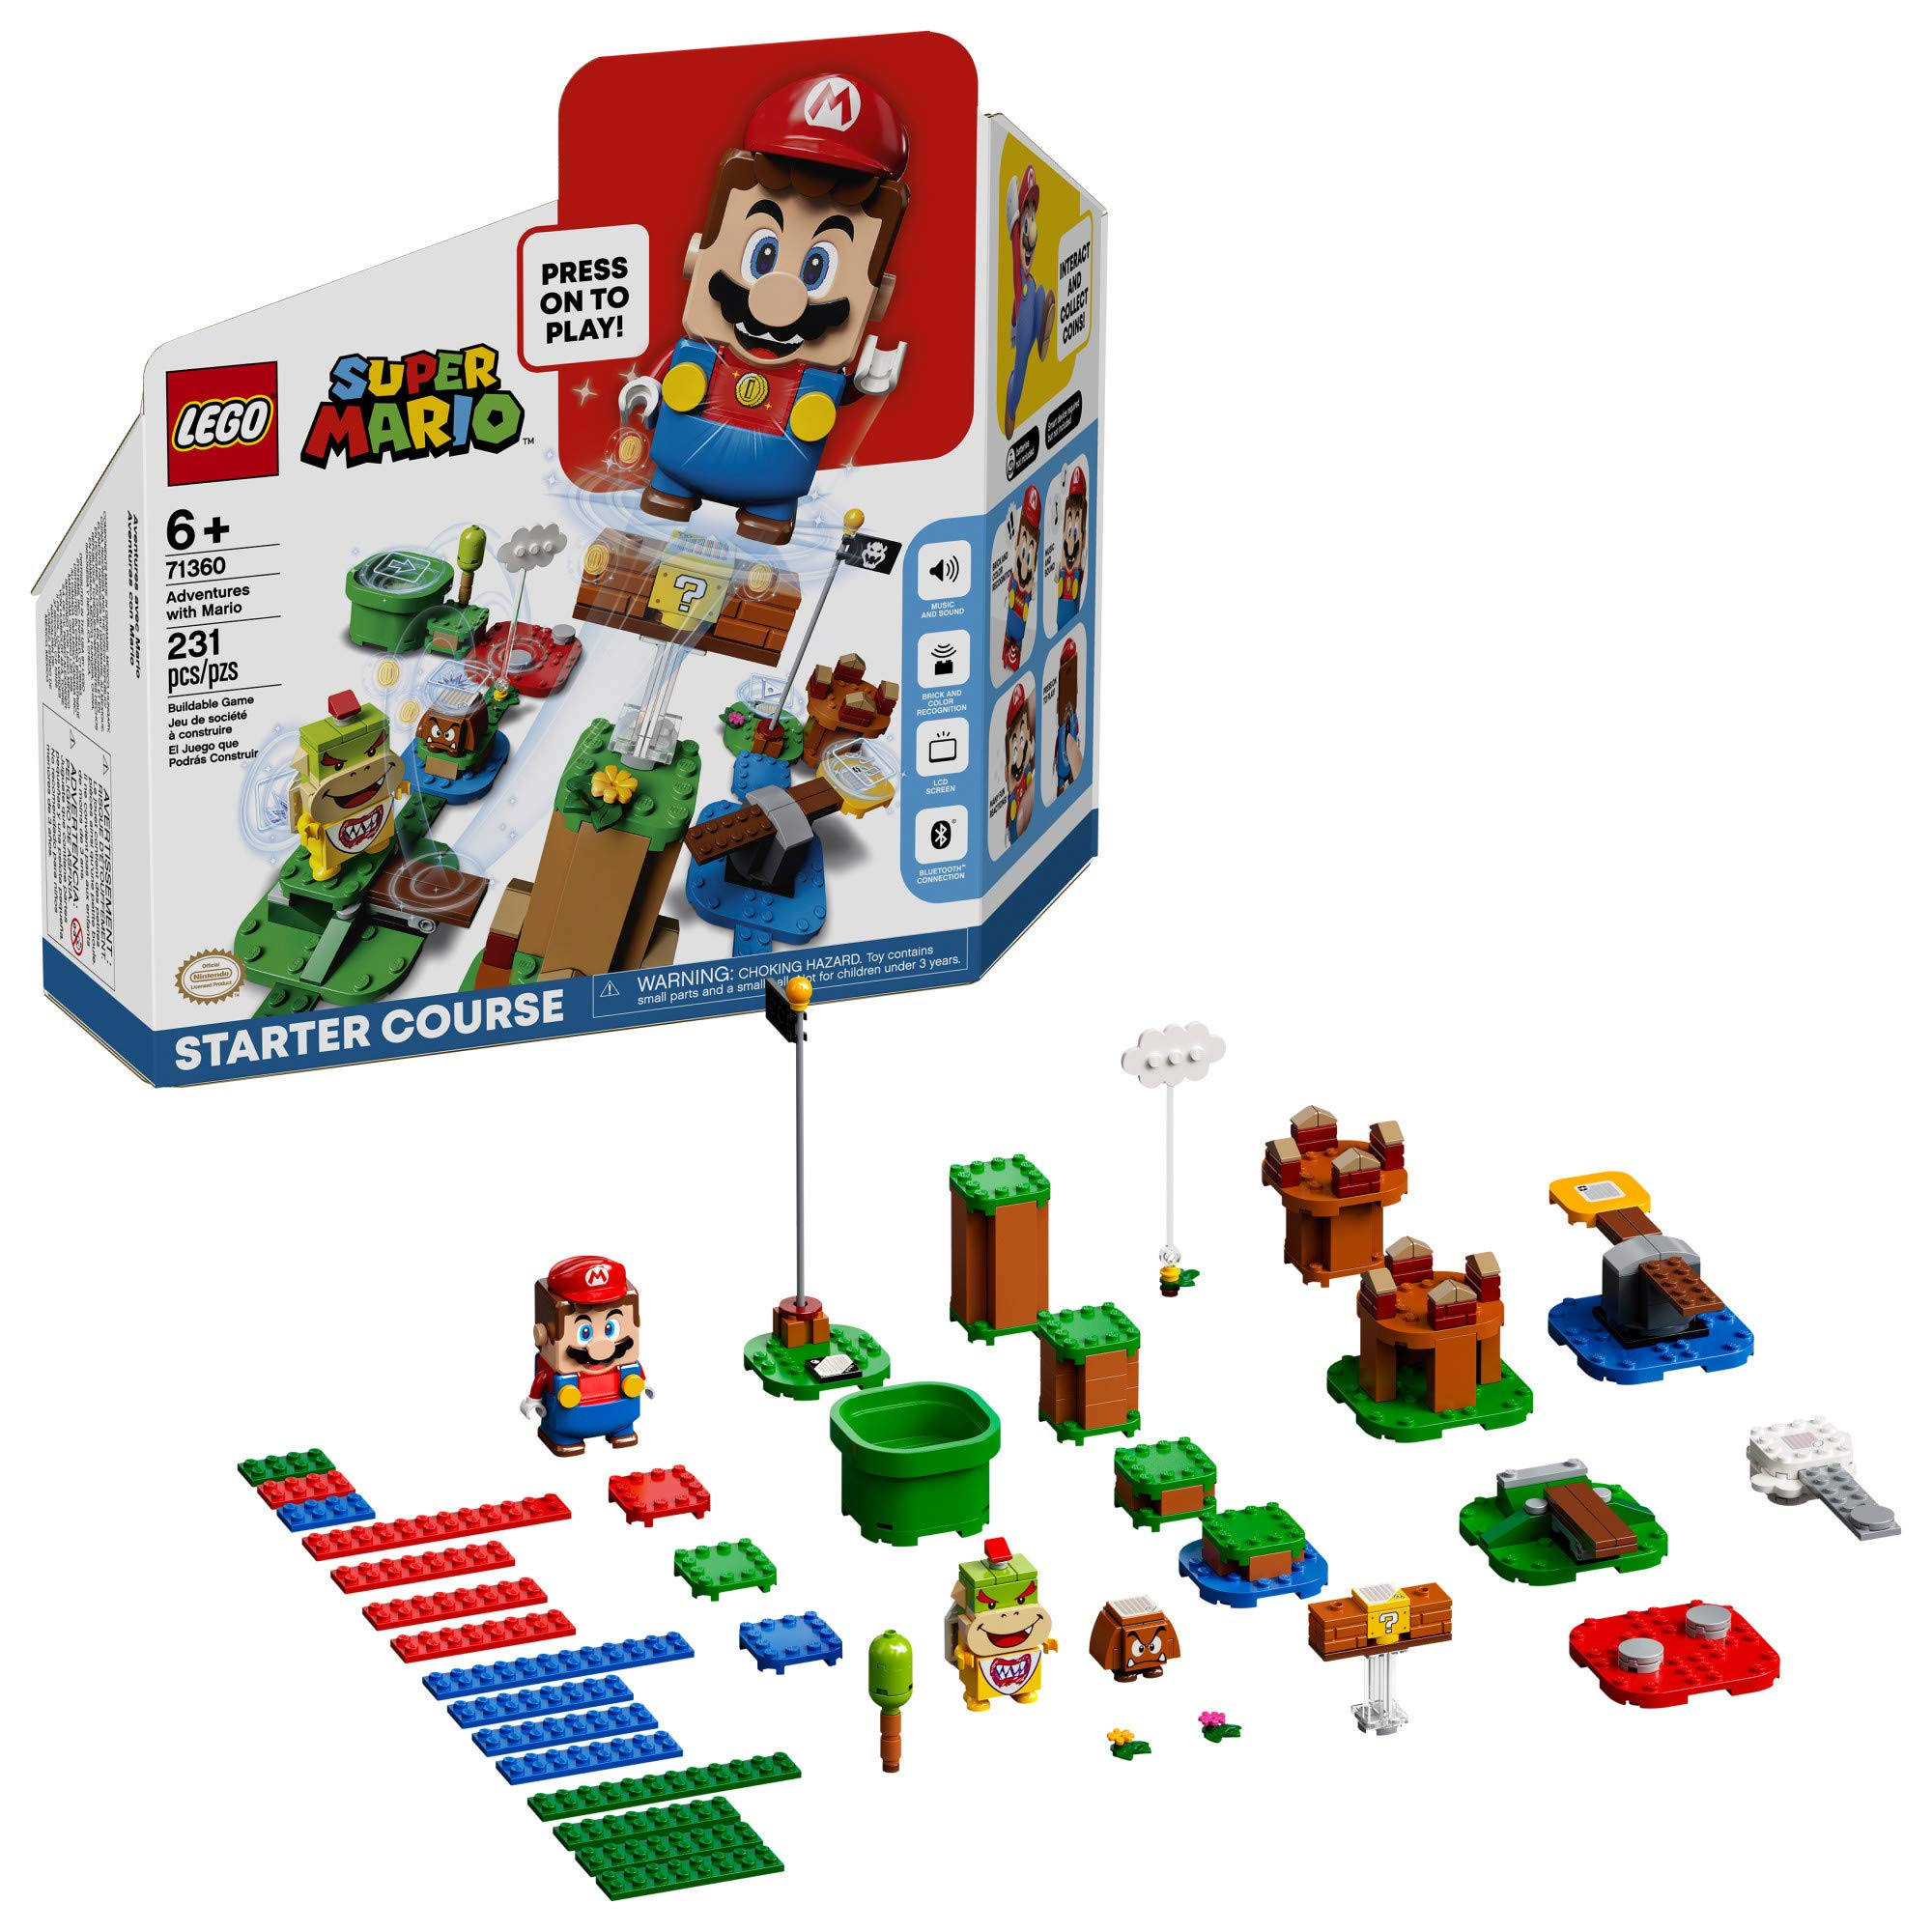 LEGO Super Mario Adventures with Mario Starter Course 71360 Building Kit Interactive Set Featuring Mario Bowser Jr. and Goomba Figures New 2020 (231 Pieces)